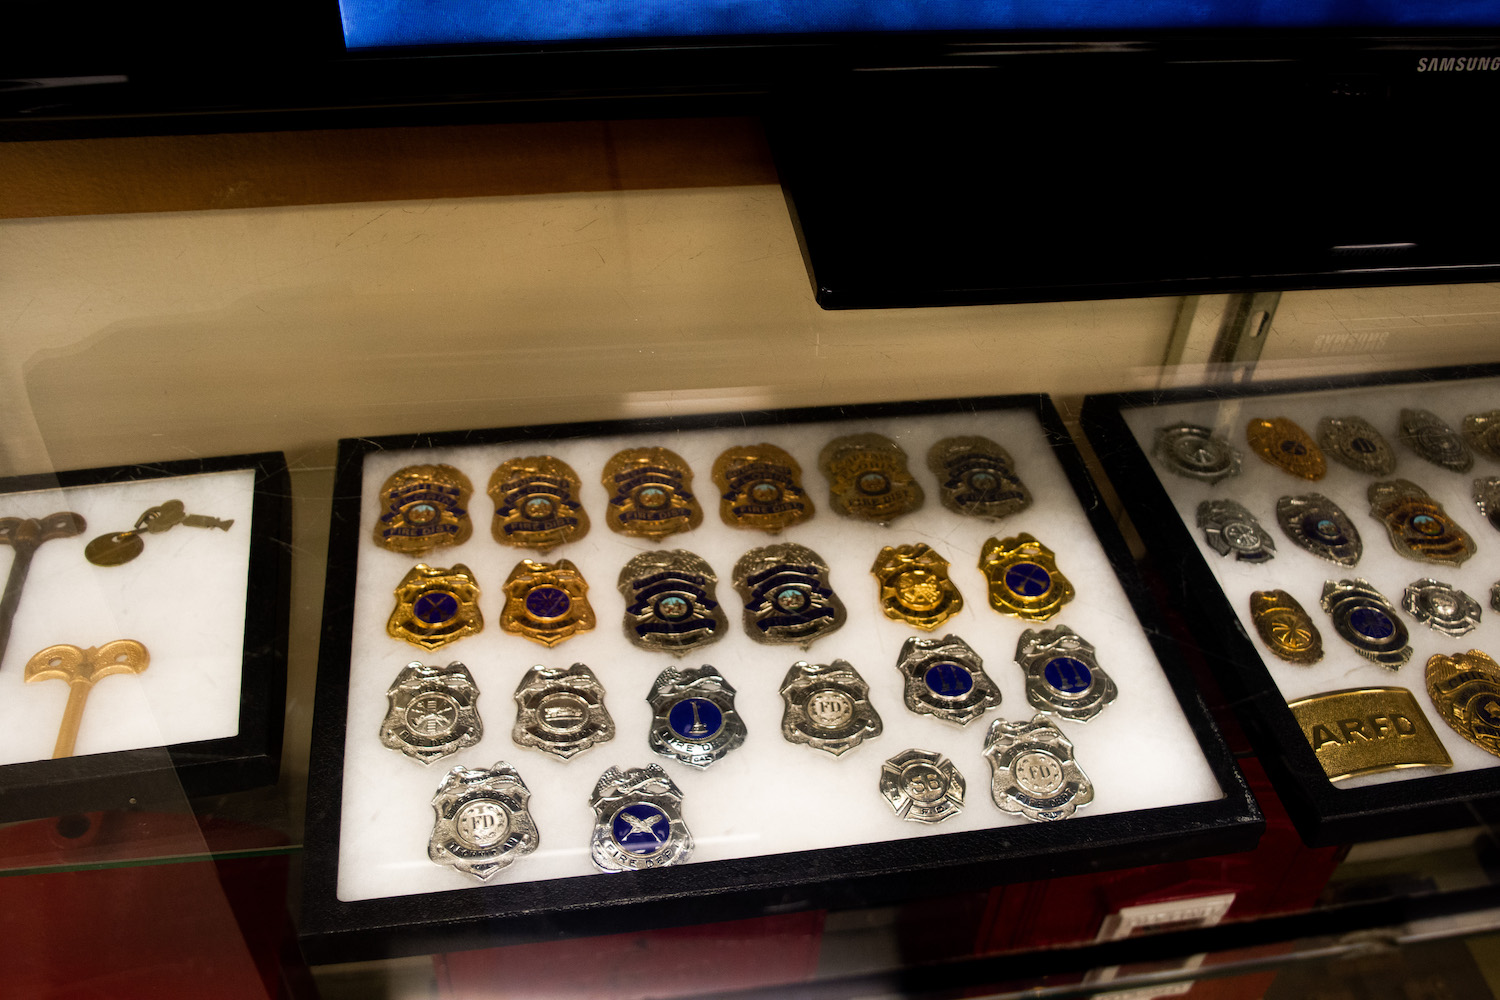 Fire Badges in display case